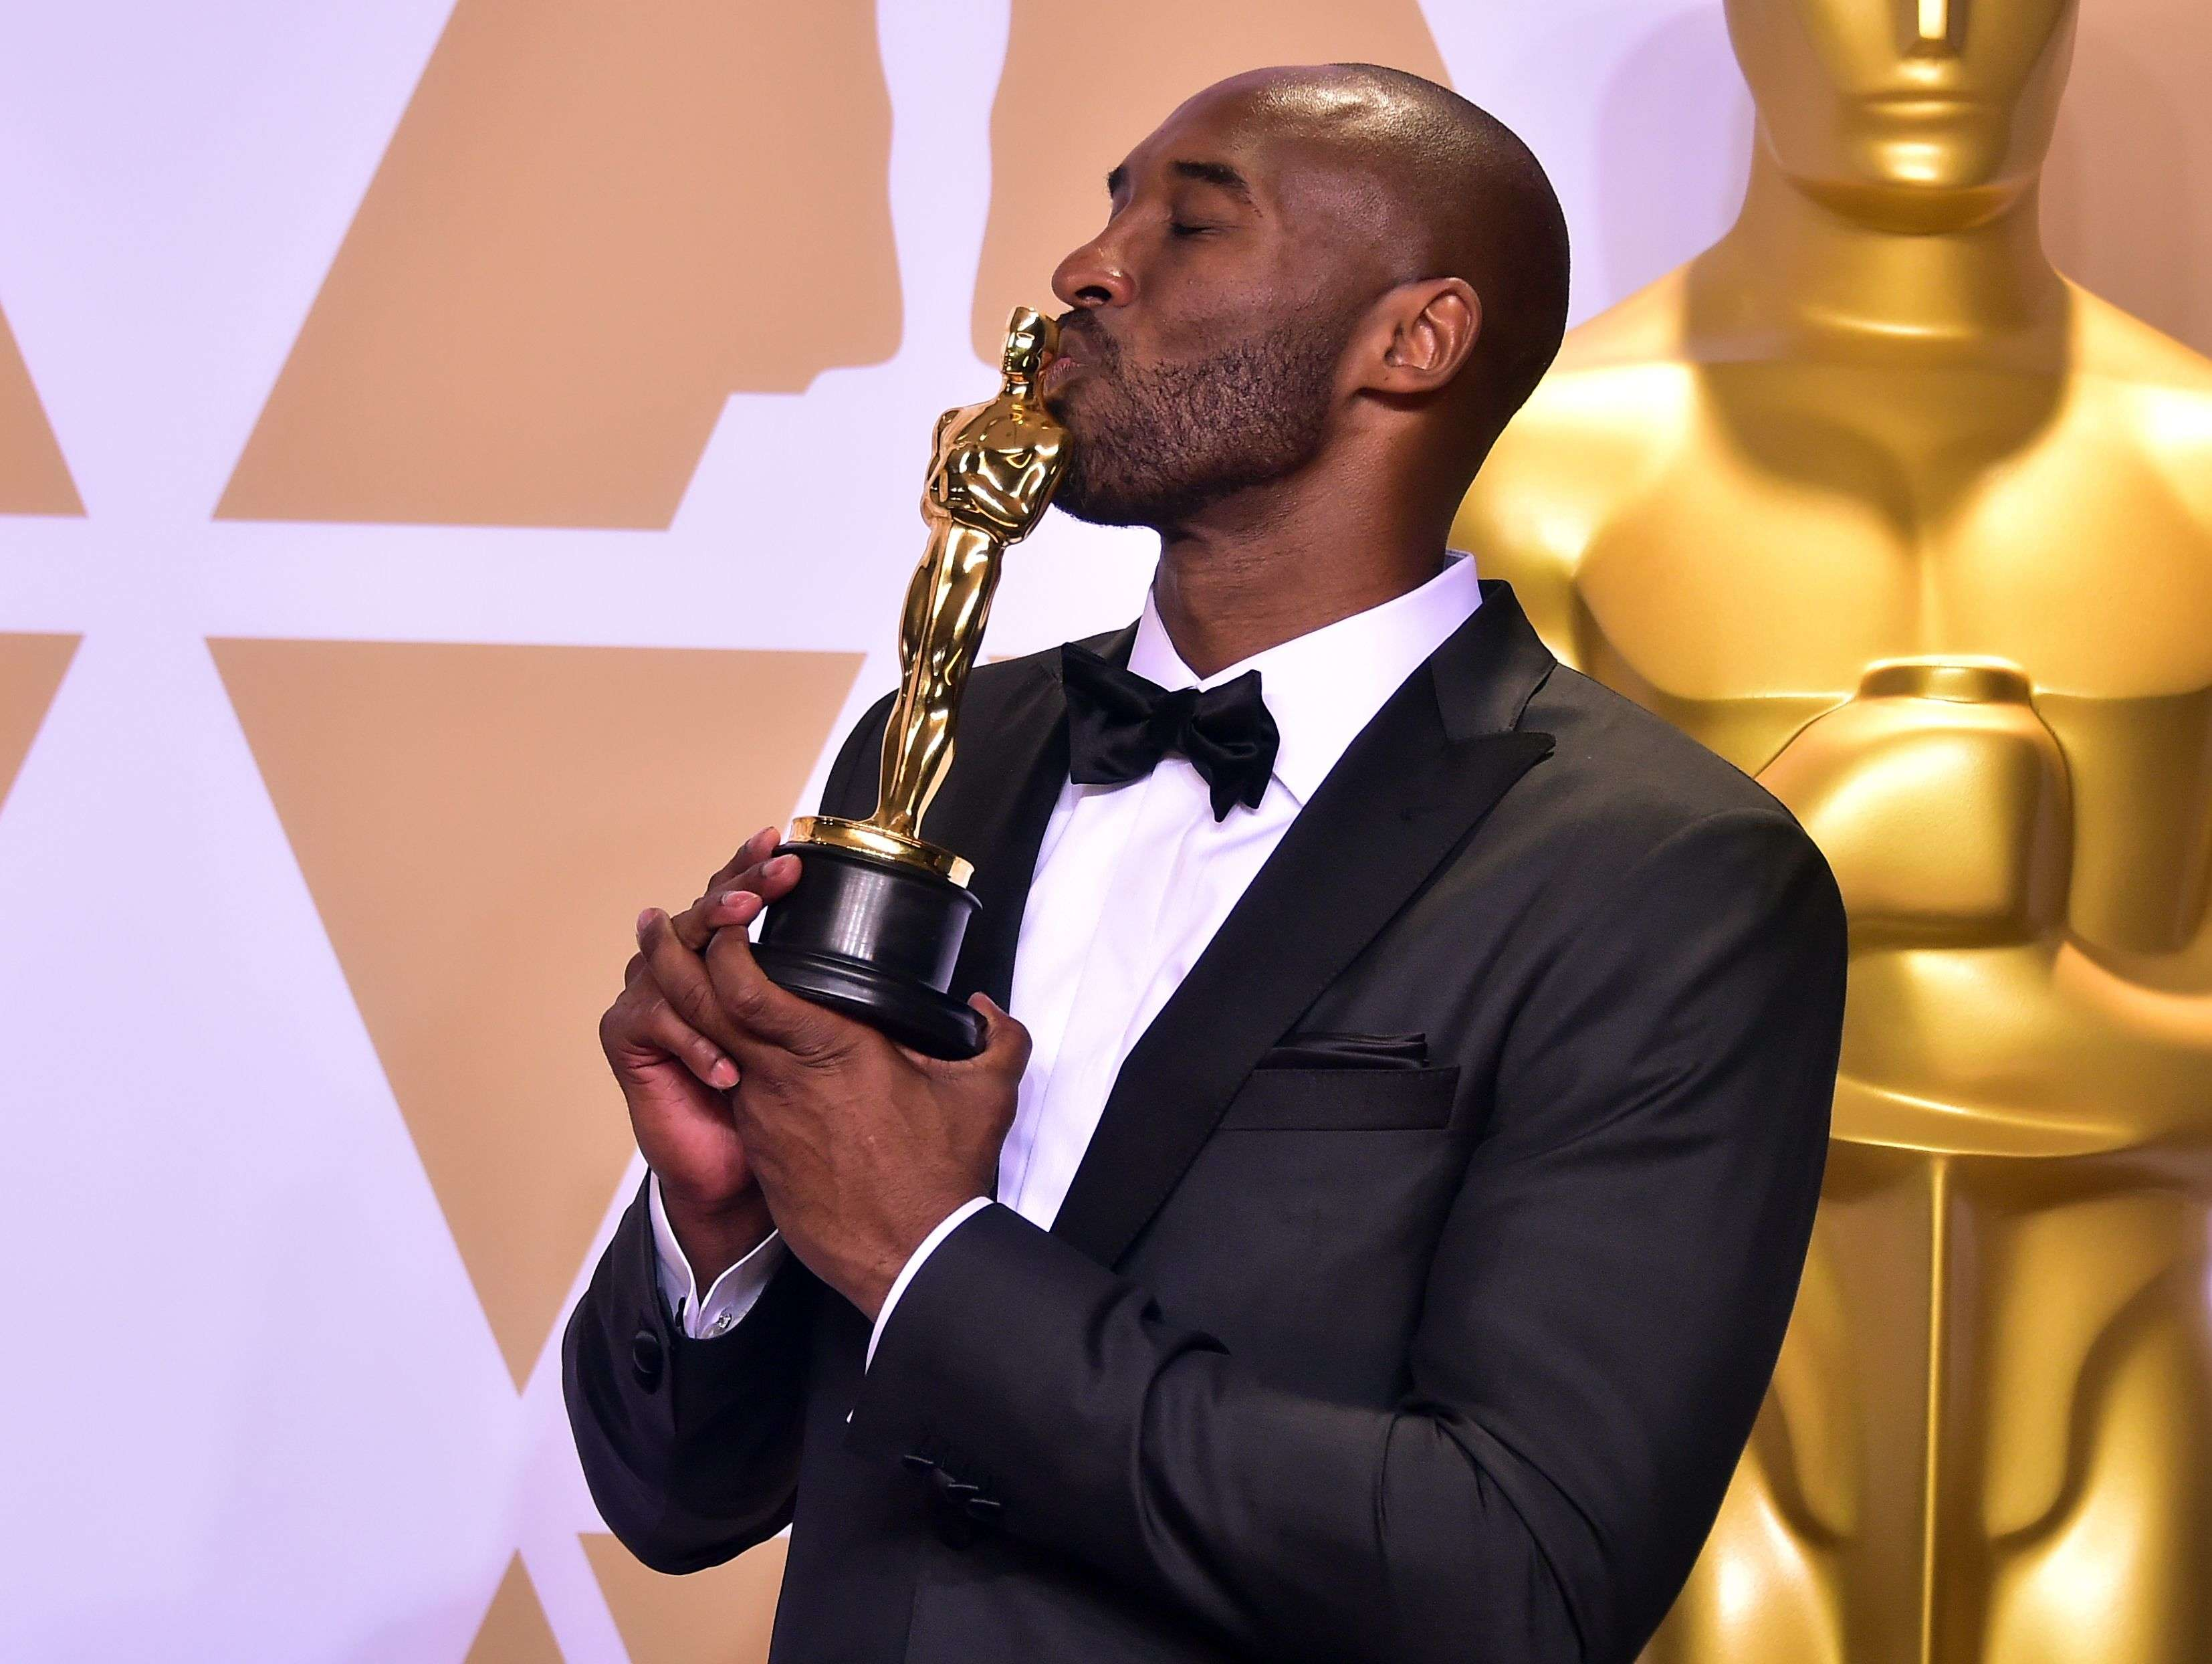 Kobe Bryant poses with the Oscar that he won for his movie 'Dear Basketball' in the Best Animated Short Film category in 2018 during the 90th Annual Academy Awards in Hollywood, California.